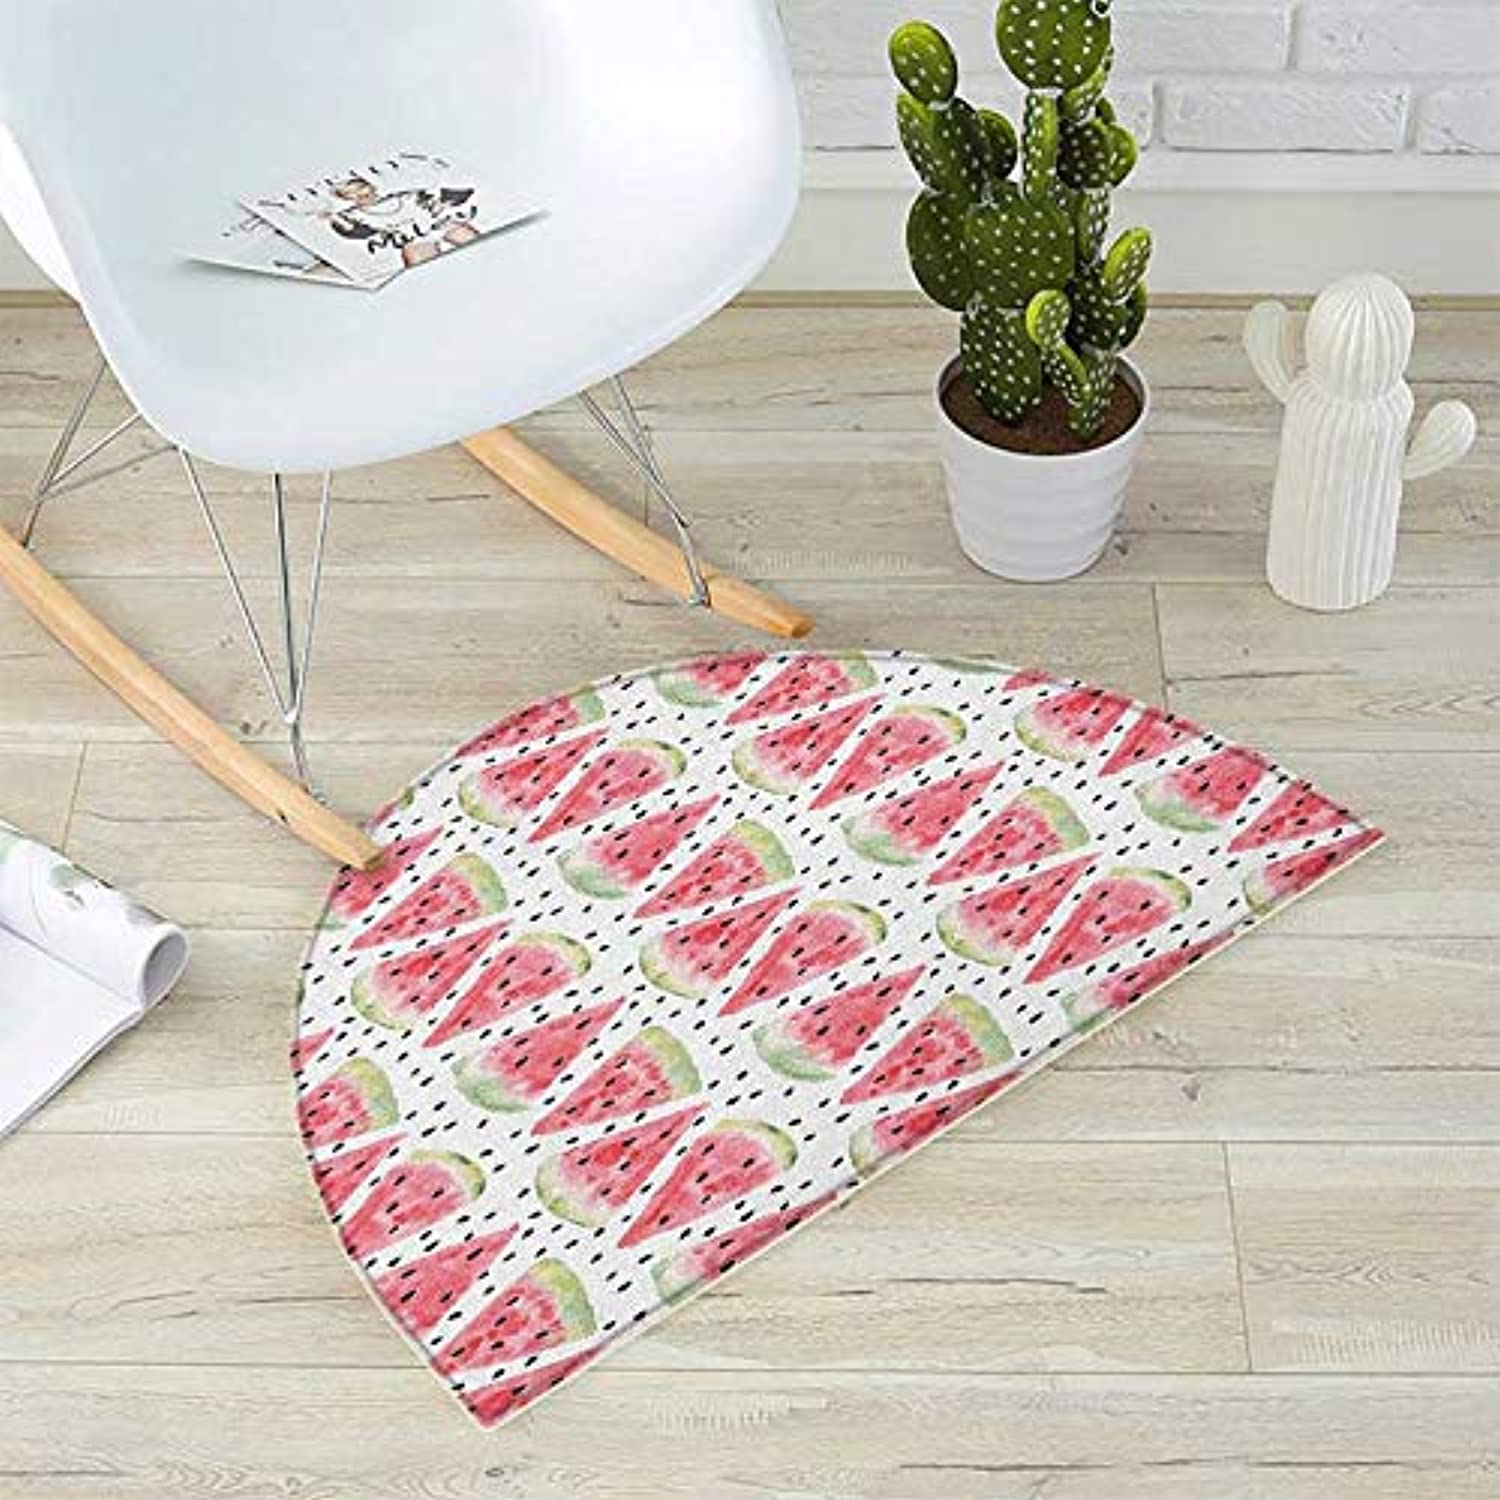 Watercolor Semicircular Cushion Pattern of Sweet Juicy Pieces Watermelon with Seed Tropical Summer Entry Door Mat H 51.1  xD 76.7  Coral Pale Green Black